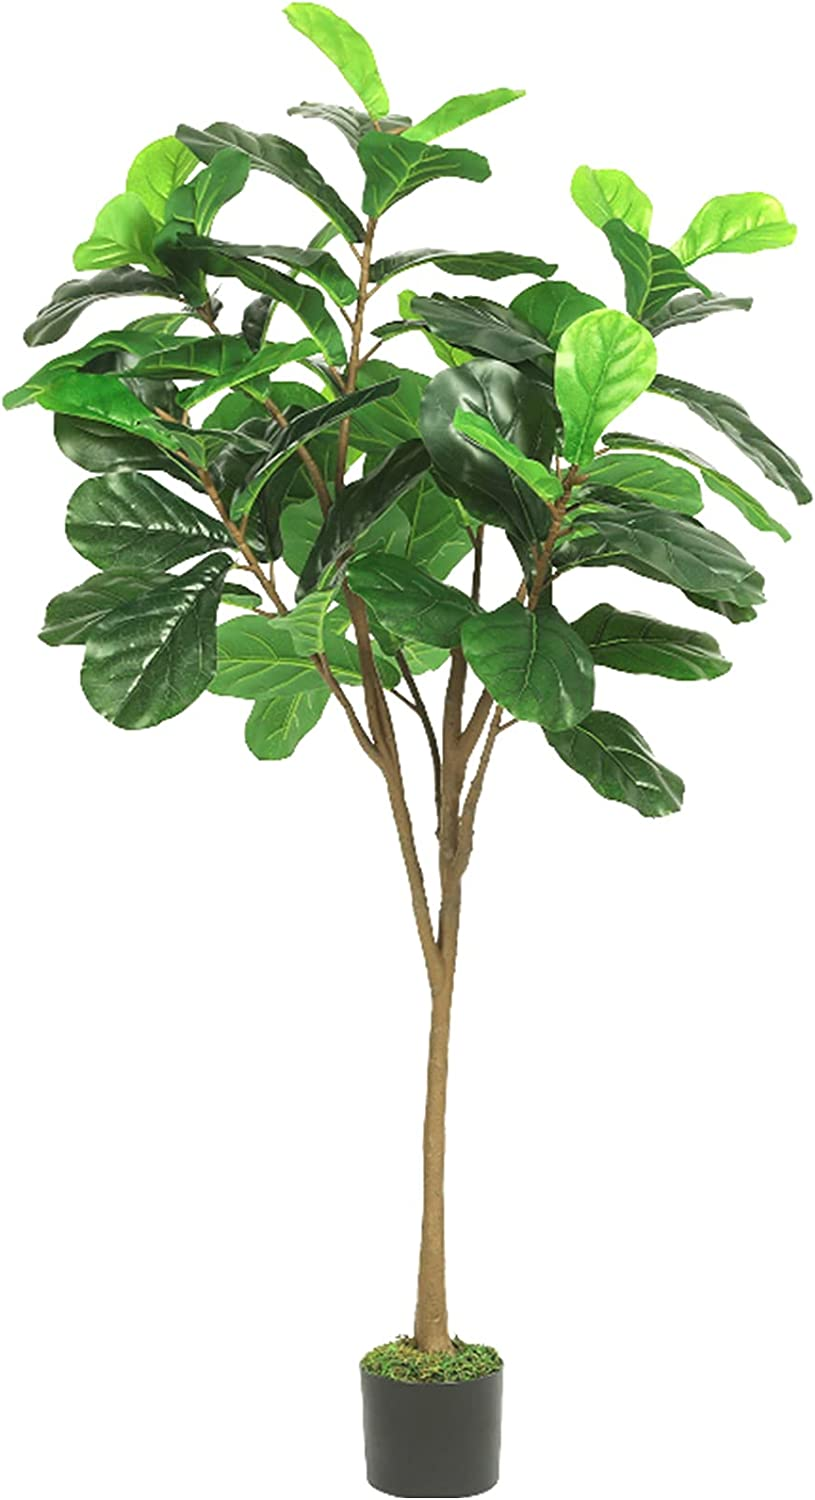 Artificial Fiddle Leaf Fig Tree Tall in Plant 5ft Max 84% Japan Maker New OFF Pot